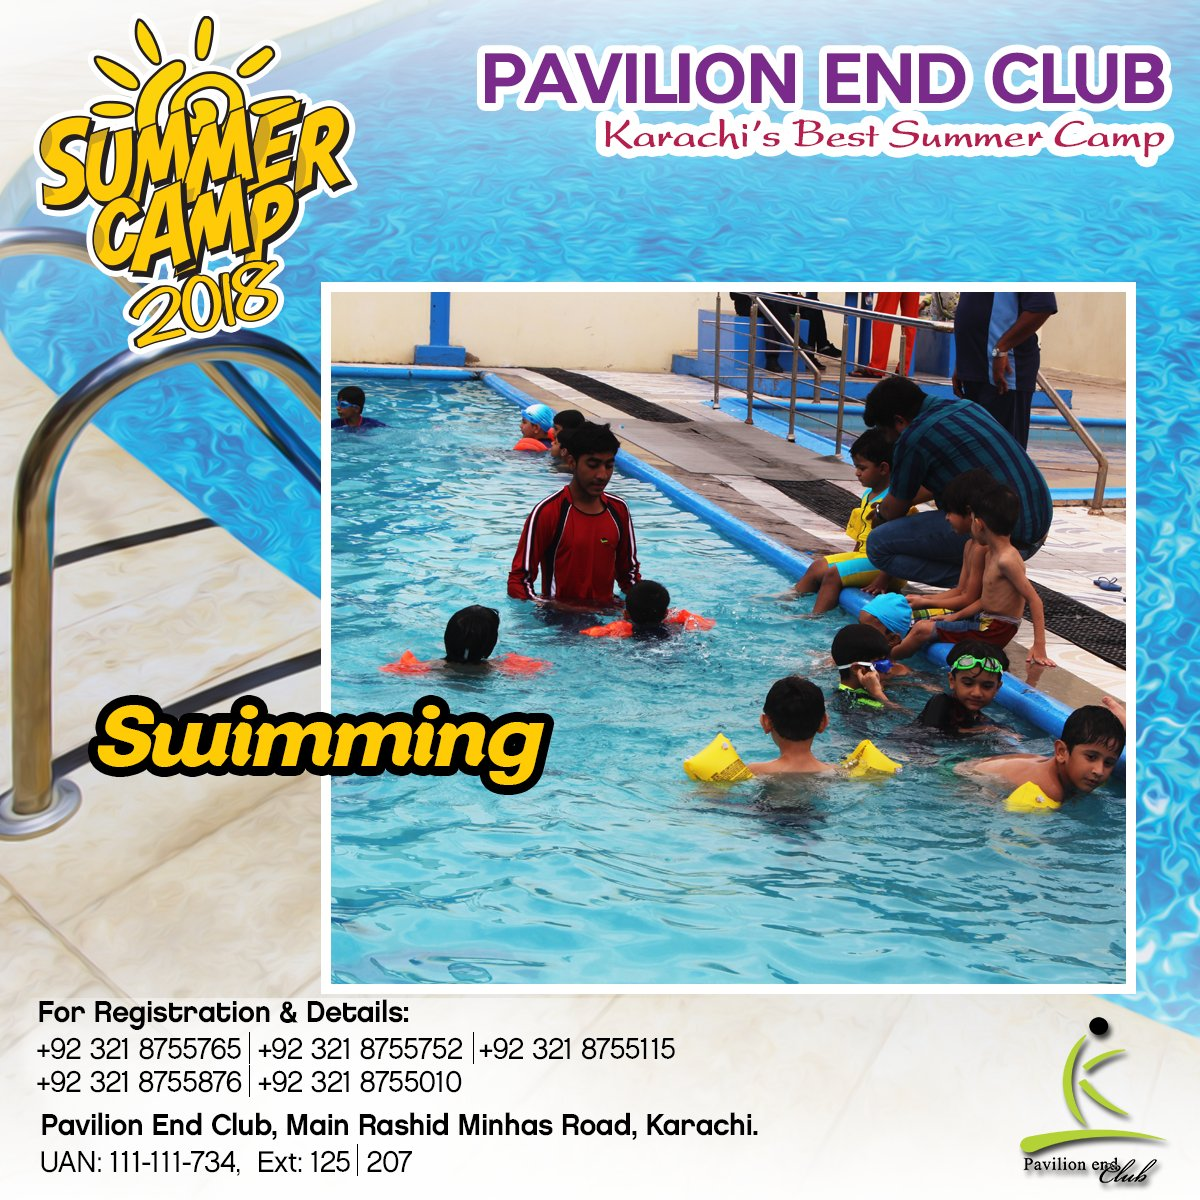 Do You Want Your Children To Learn Swimming?  Get Your Children Registered #pavilionEndClub at #PEC's Summer Camp 2018 Now !  Contact 0321-8755765 0321-8755752 #Summercamp2018 #SwimmingCourse #Professionaltrainer #PECSummercamp #registernow #PavillionEndClub https://t.co/LYgtw6rd6y